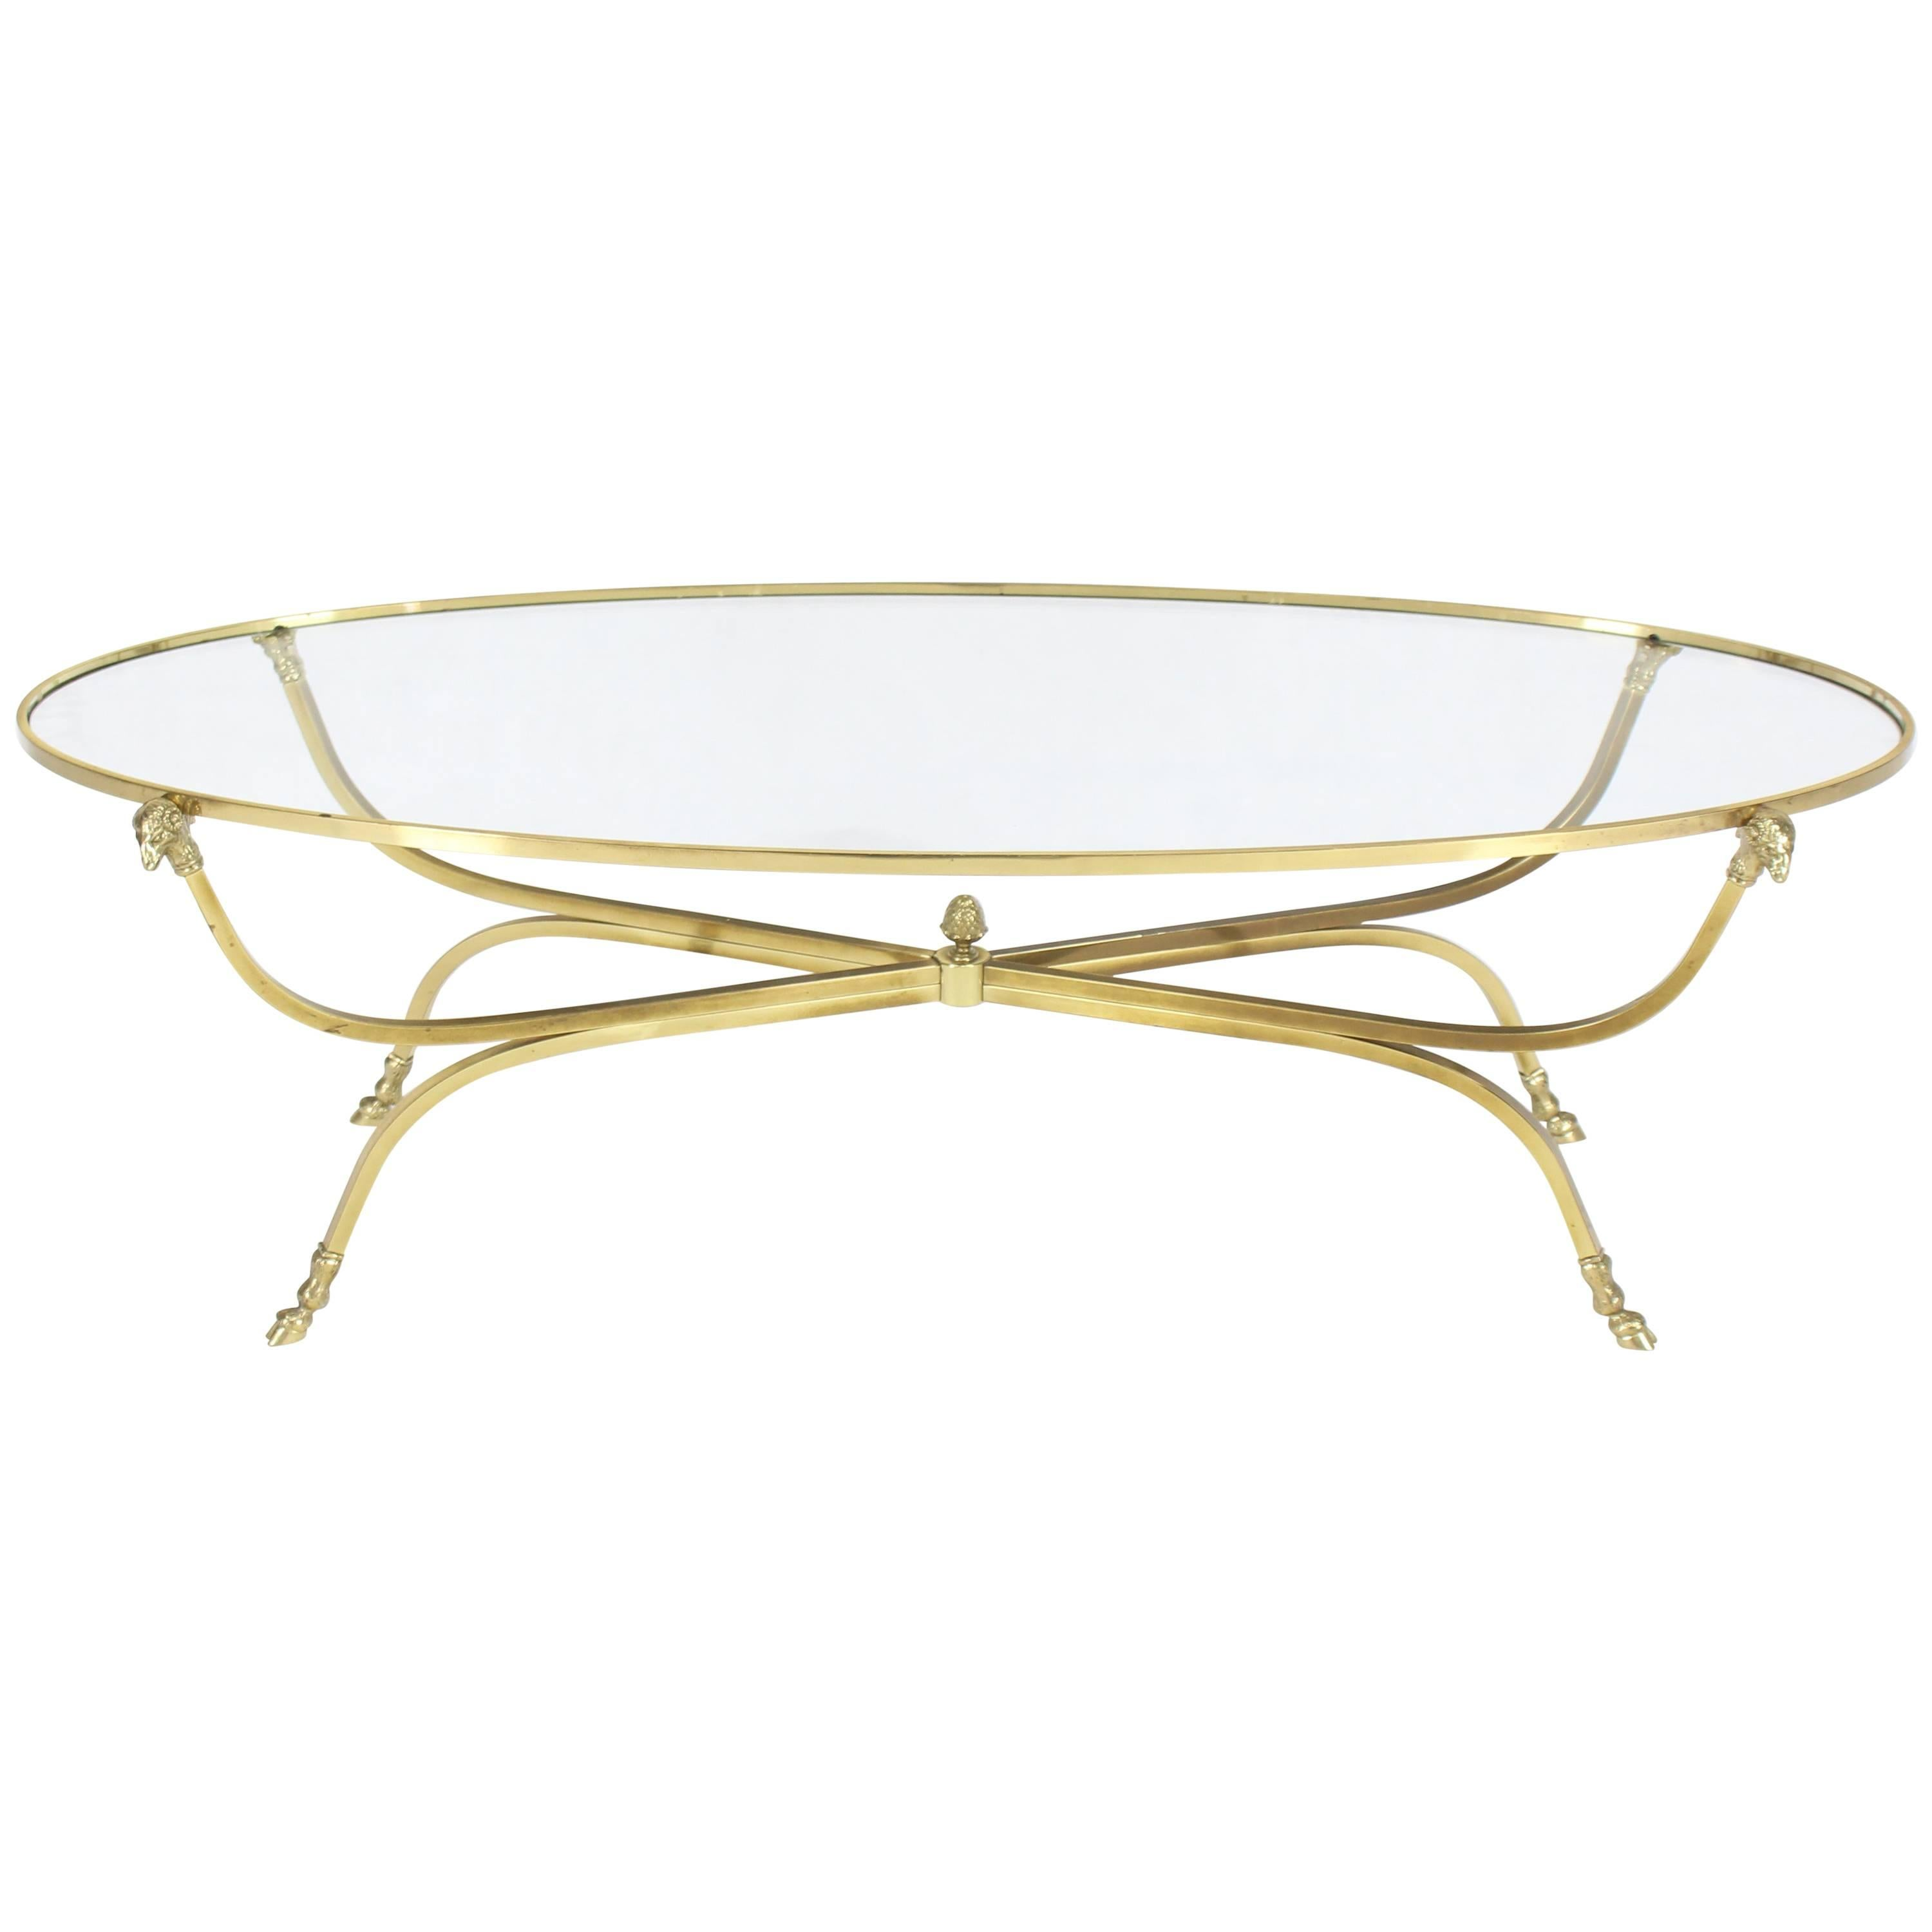 Large Oval Polished Brass Glass Top Coffee Table On Hoof Foot For Sale